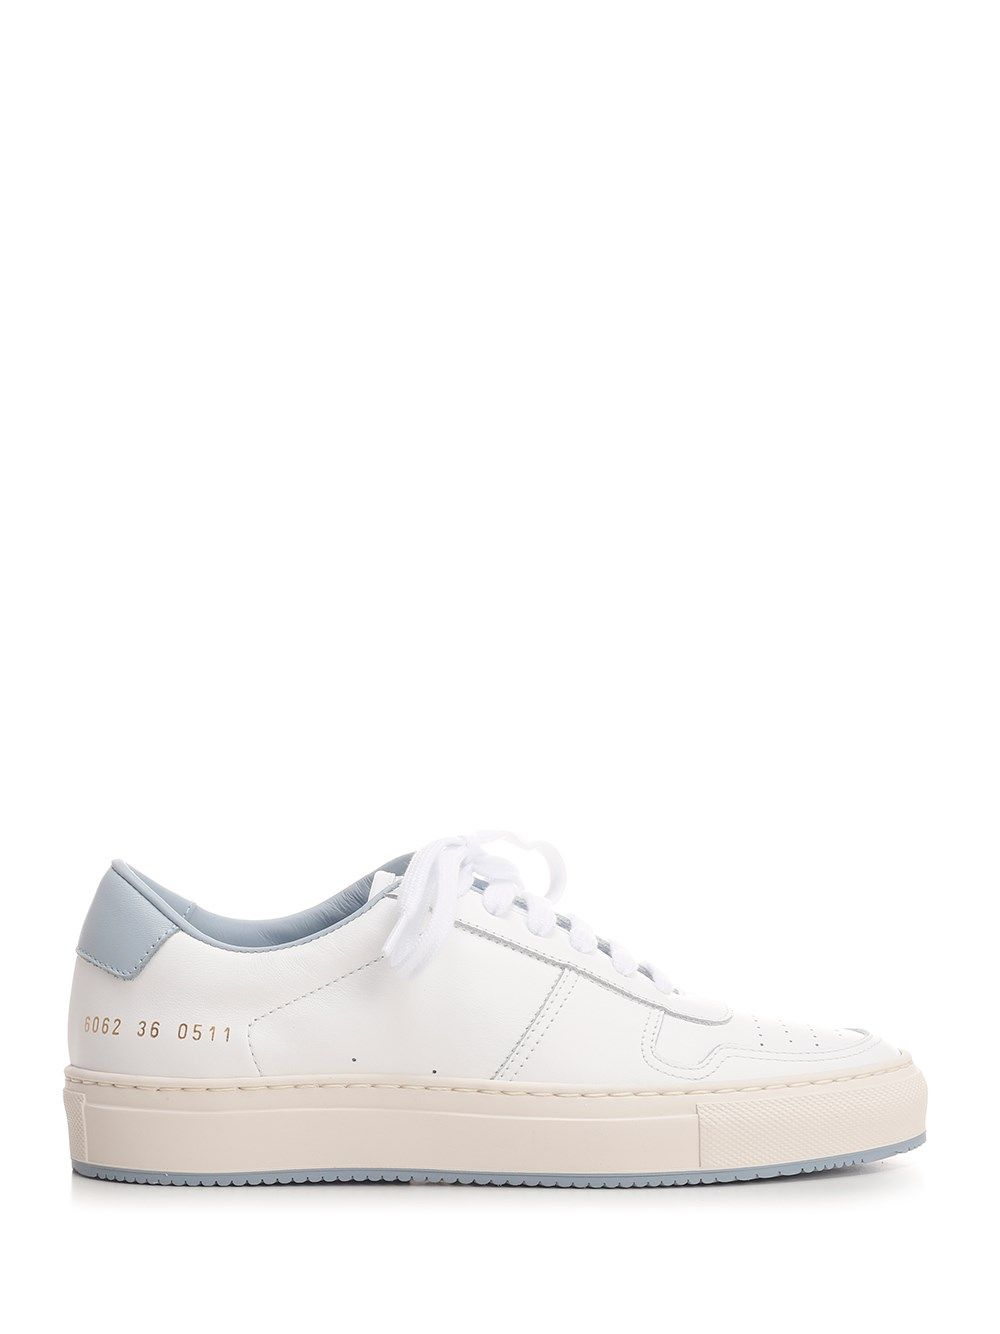 Common Projects Low tops COMMON PROJECTS WOMEN'S 60620511 WHITE OTHER MATERIALS SNEAKERS